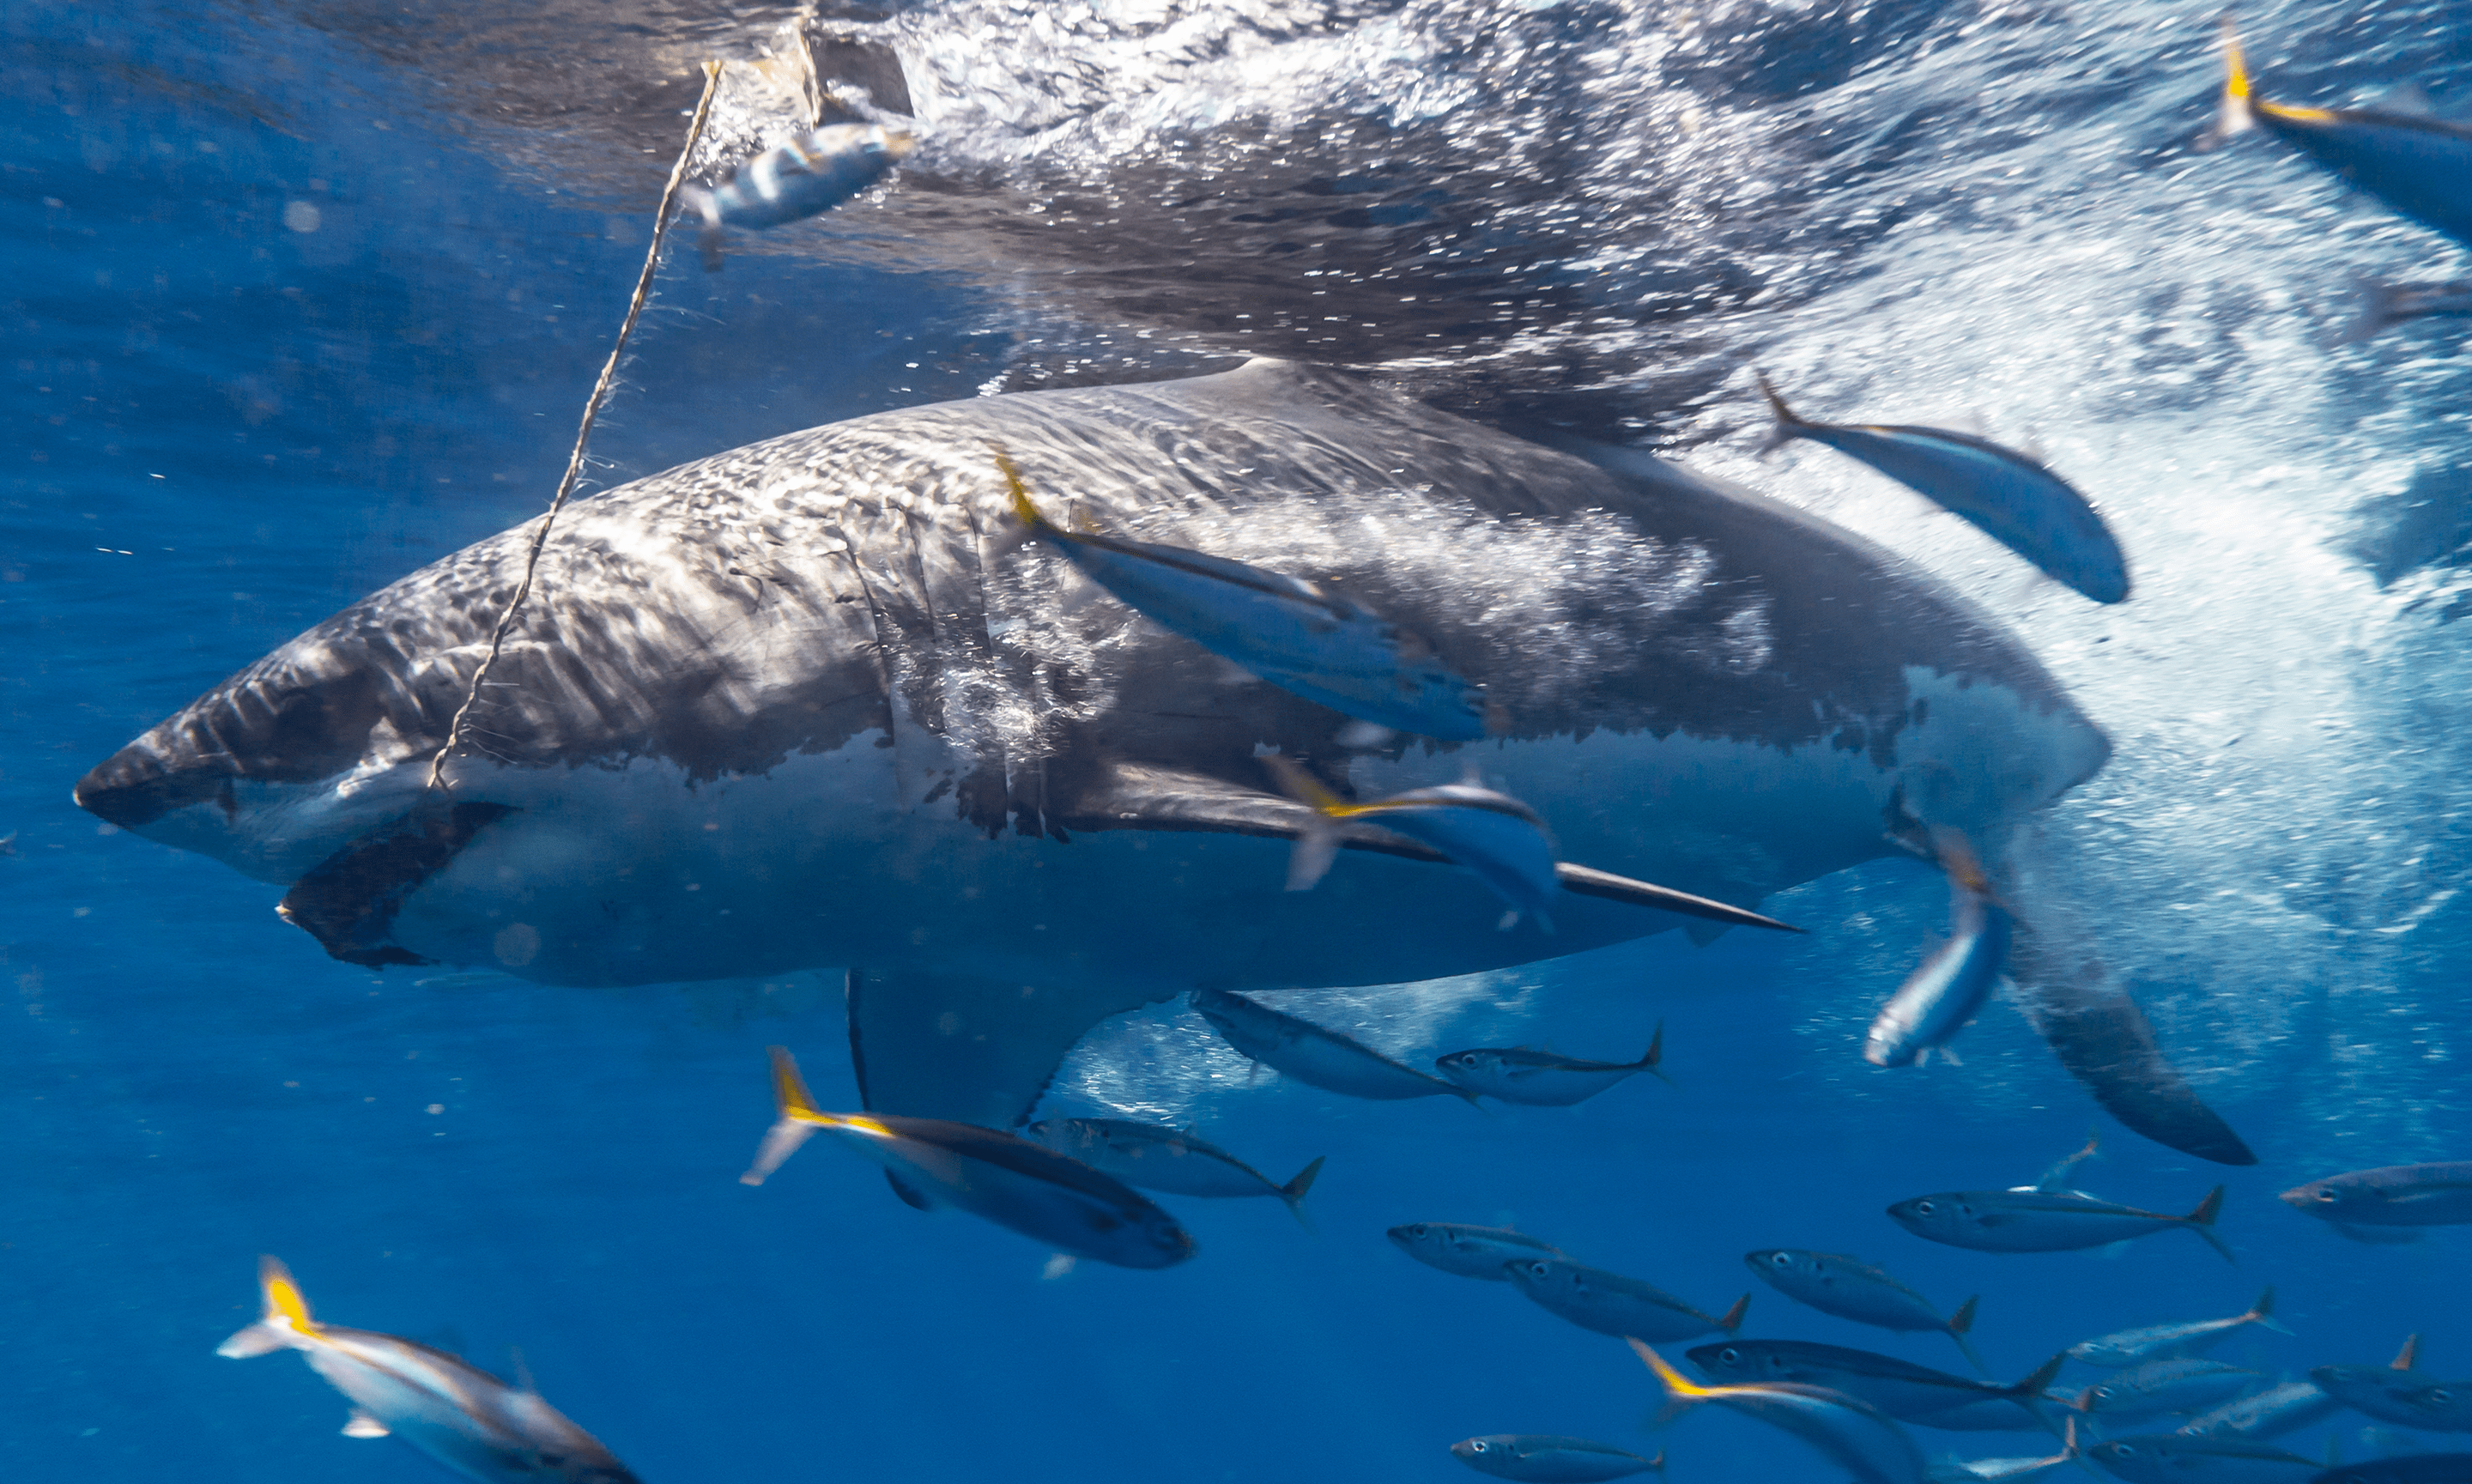 We Dove With Great White Sharks A Deke Article